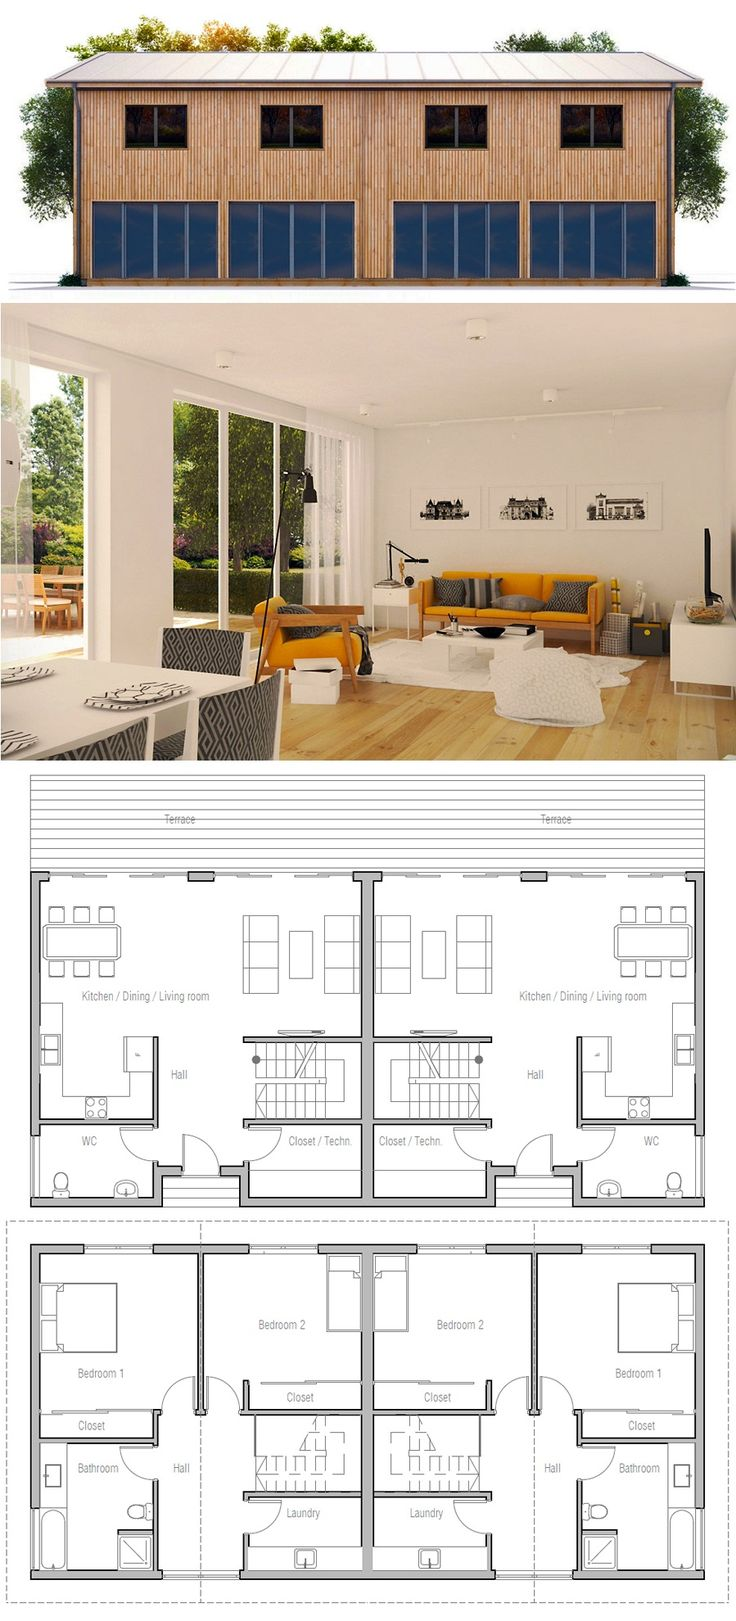 Maison duplex plan ventana blog for Plan maison duplex